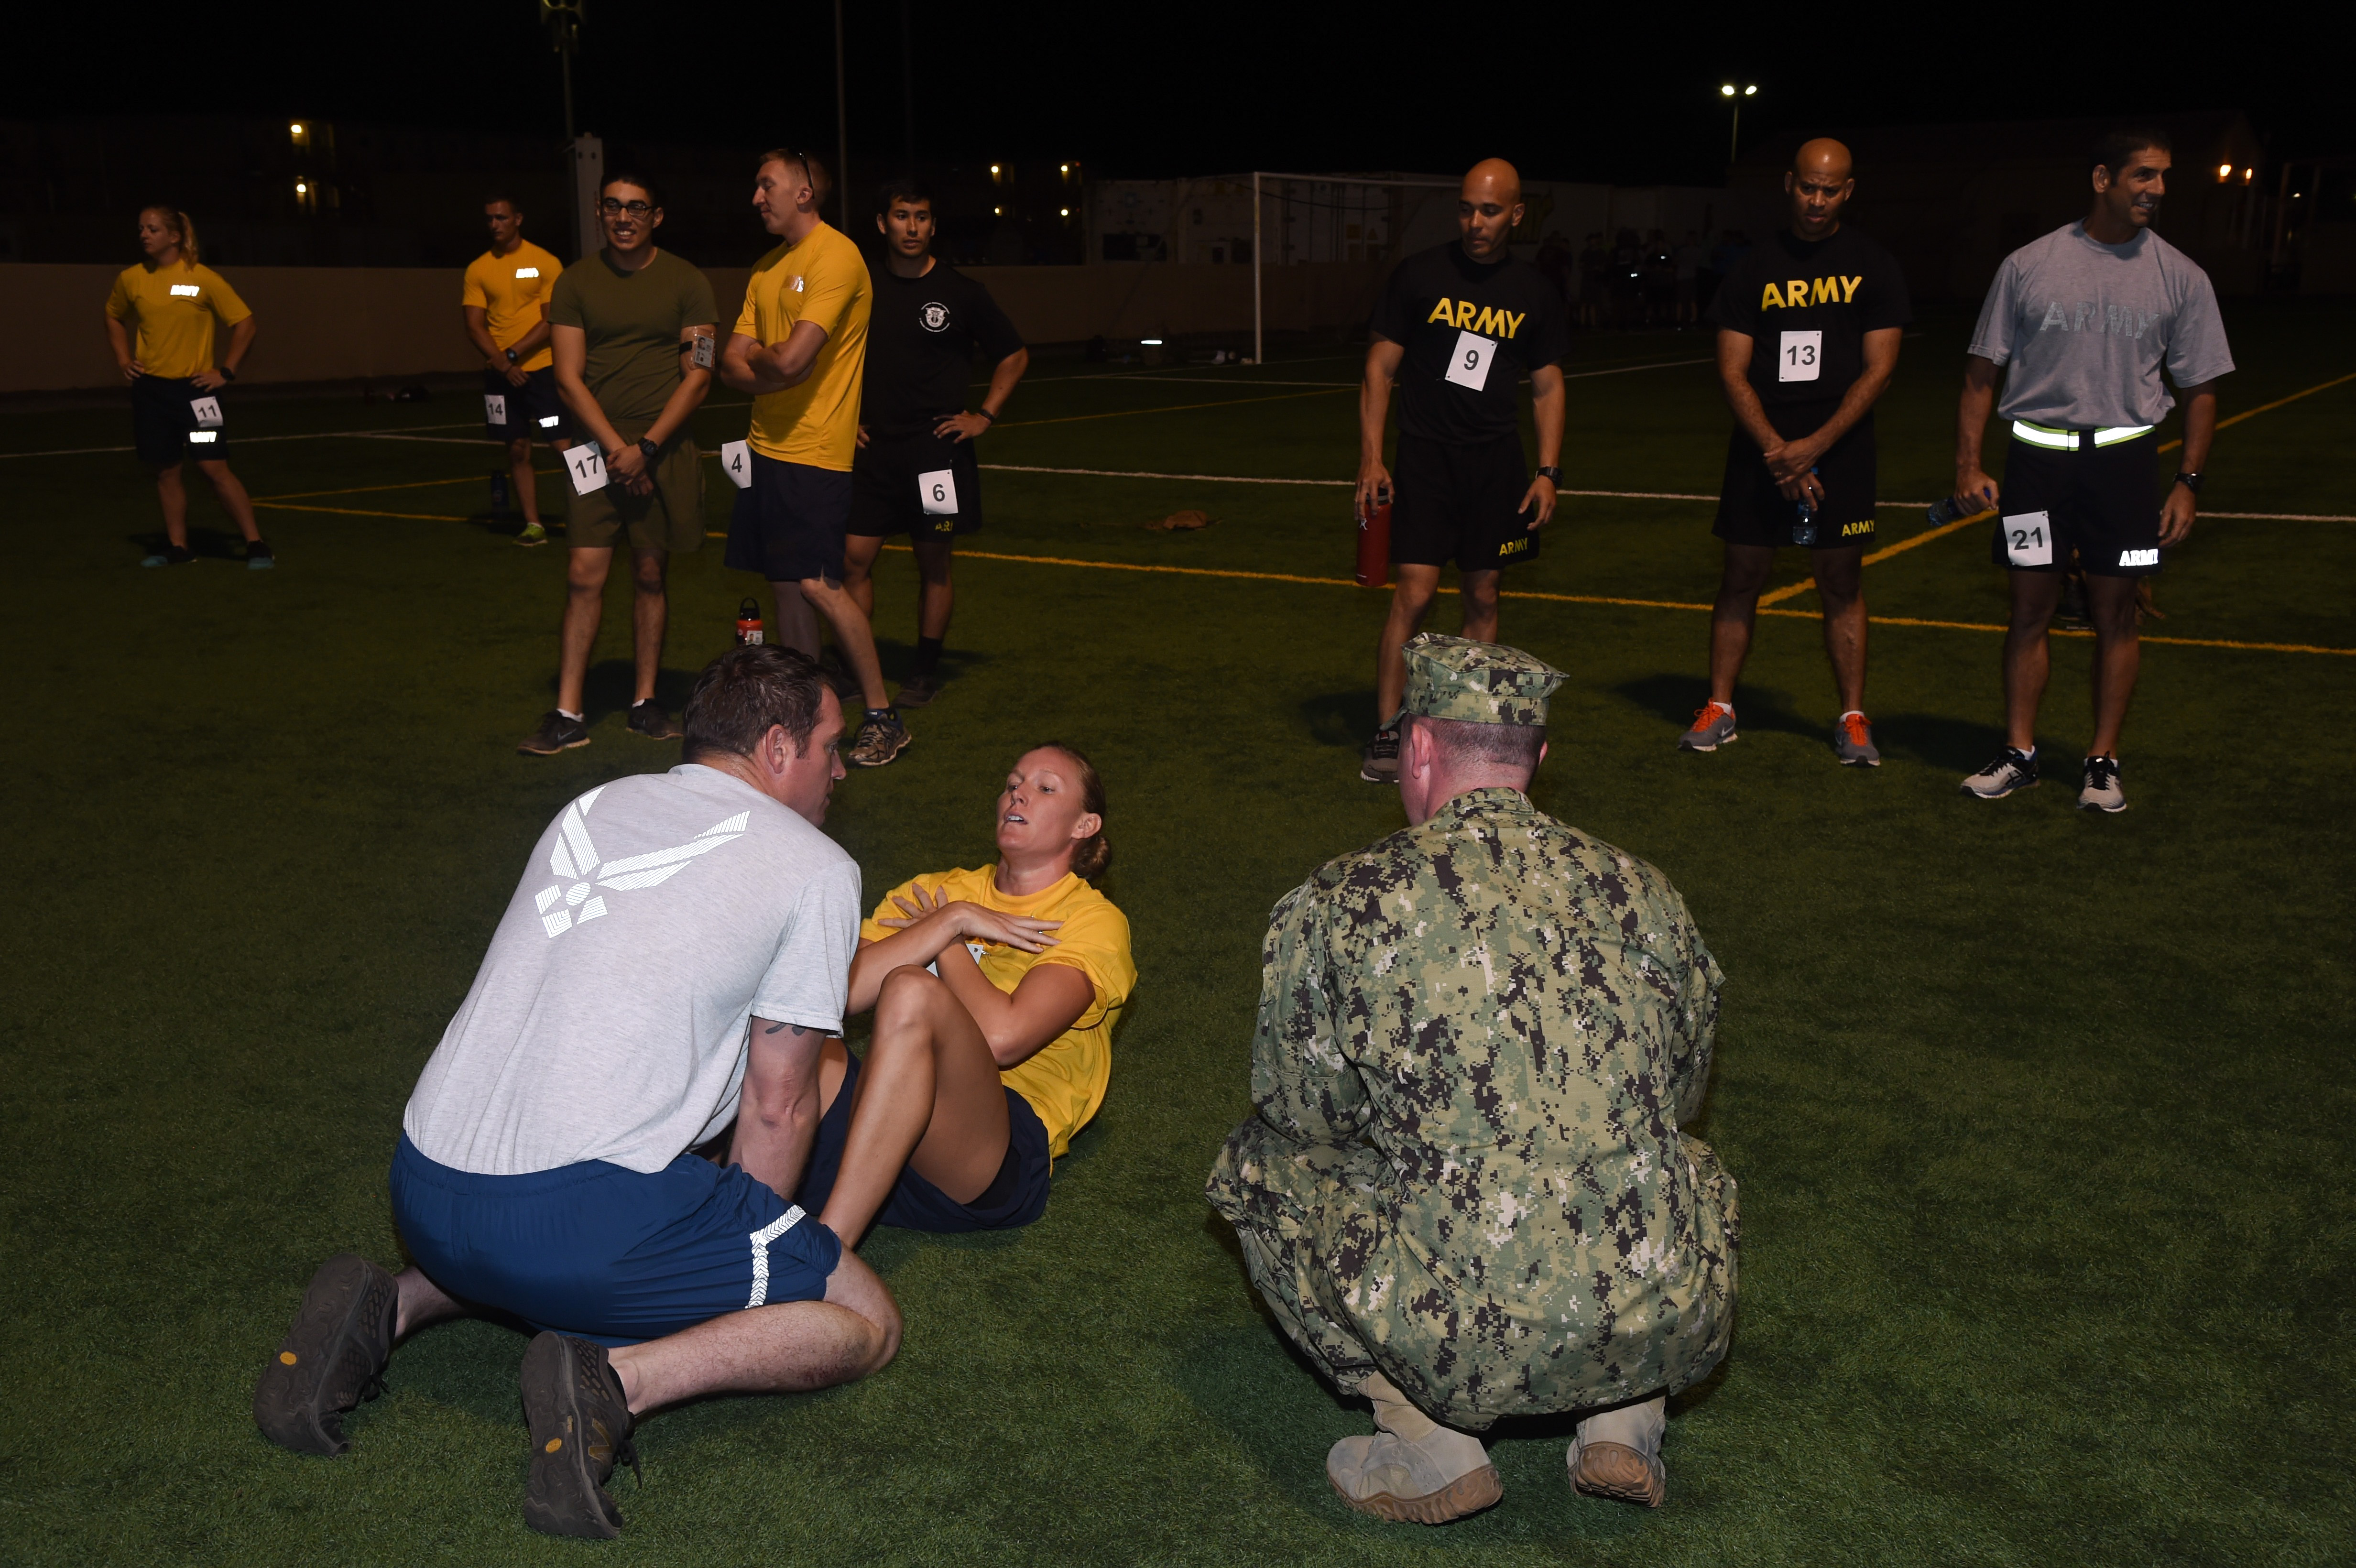 U.S. service members assigned to Combined Joint Task Force-Horn of Africa and Camp Lemonnier participate in the Joint Warrior Competition, Nov. 19, 2016, Camp Lemonnier, Djibouti. The third portion of the joint physical fitness test was the Navy curl-up. Members involved in the event met on the turf field pre-dawn to begin the day of events. (U.S. Air National Guard photo by Staff Sgt. Penny Snoozy)